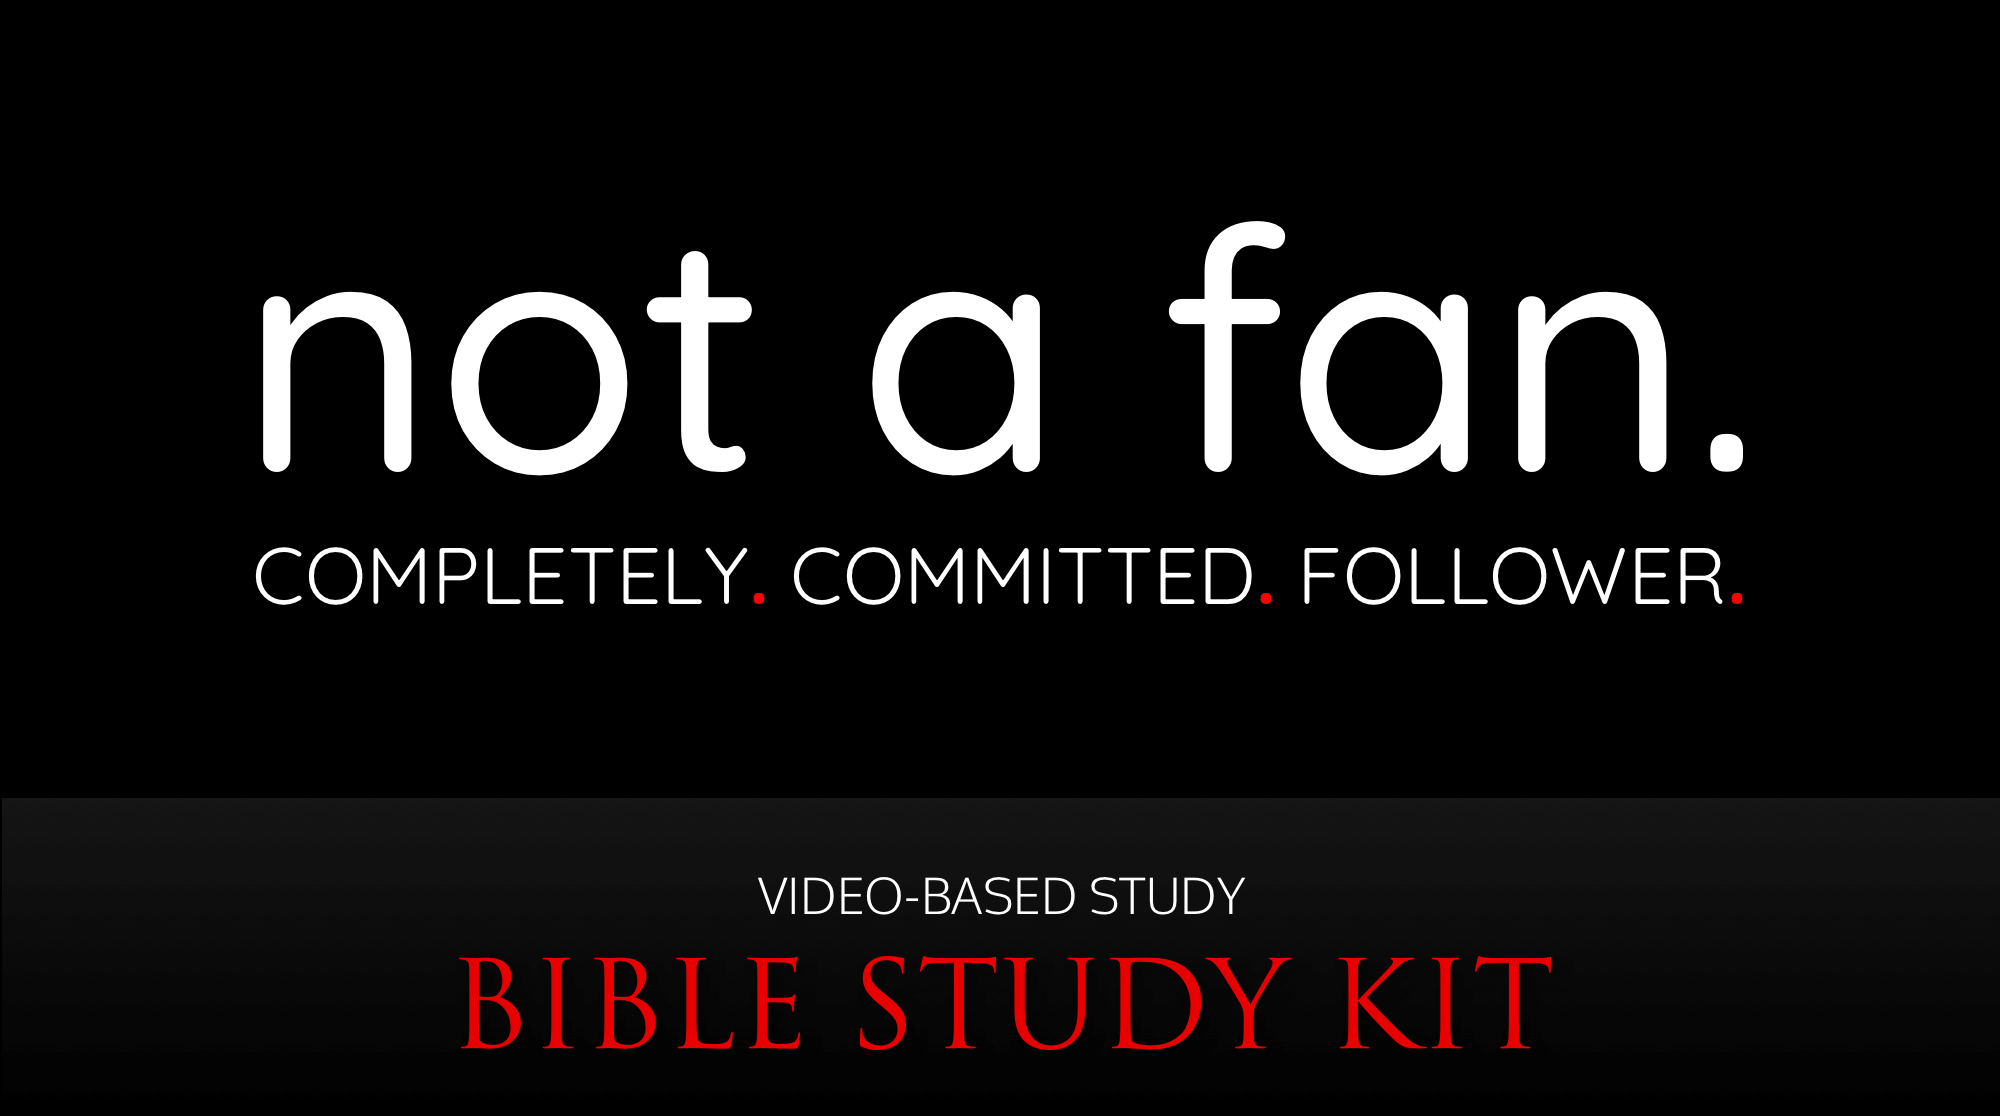 best-christian-Bible-courses-studies-Not-a-fan-dvd-bible-study-kit